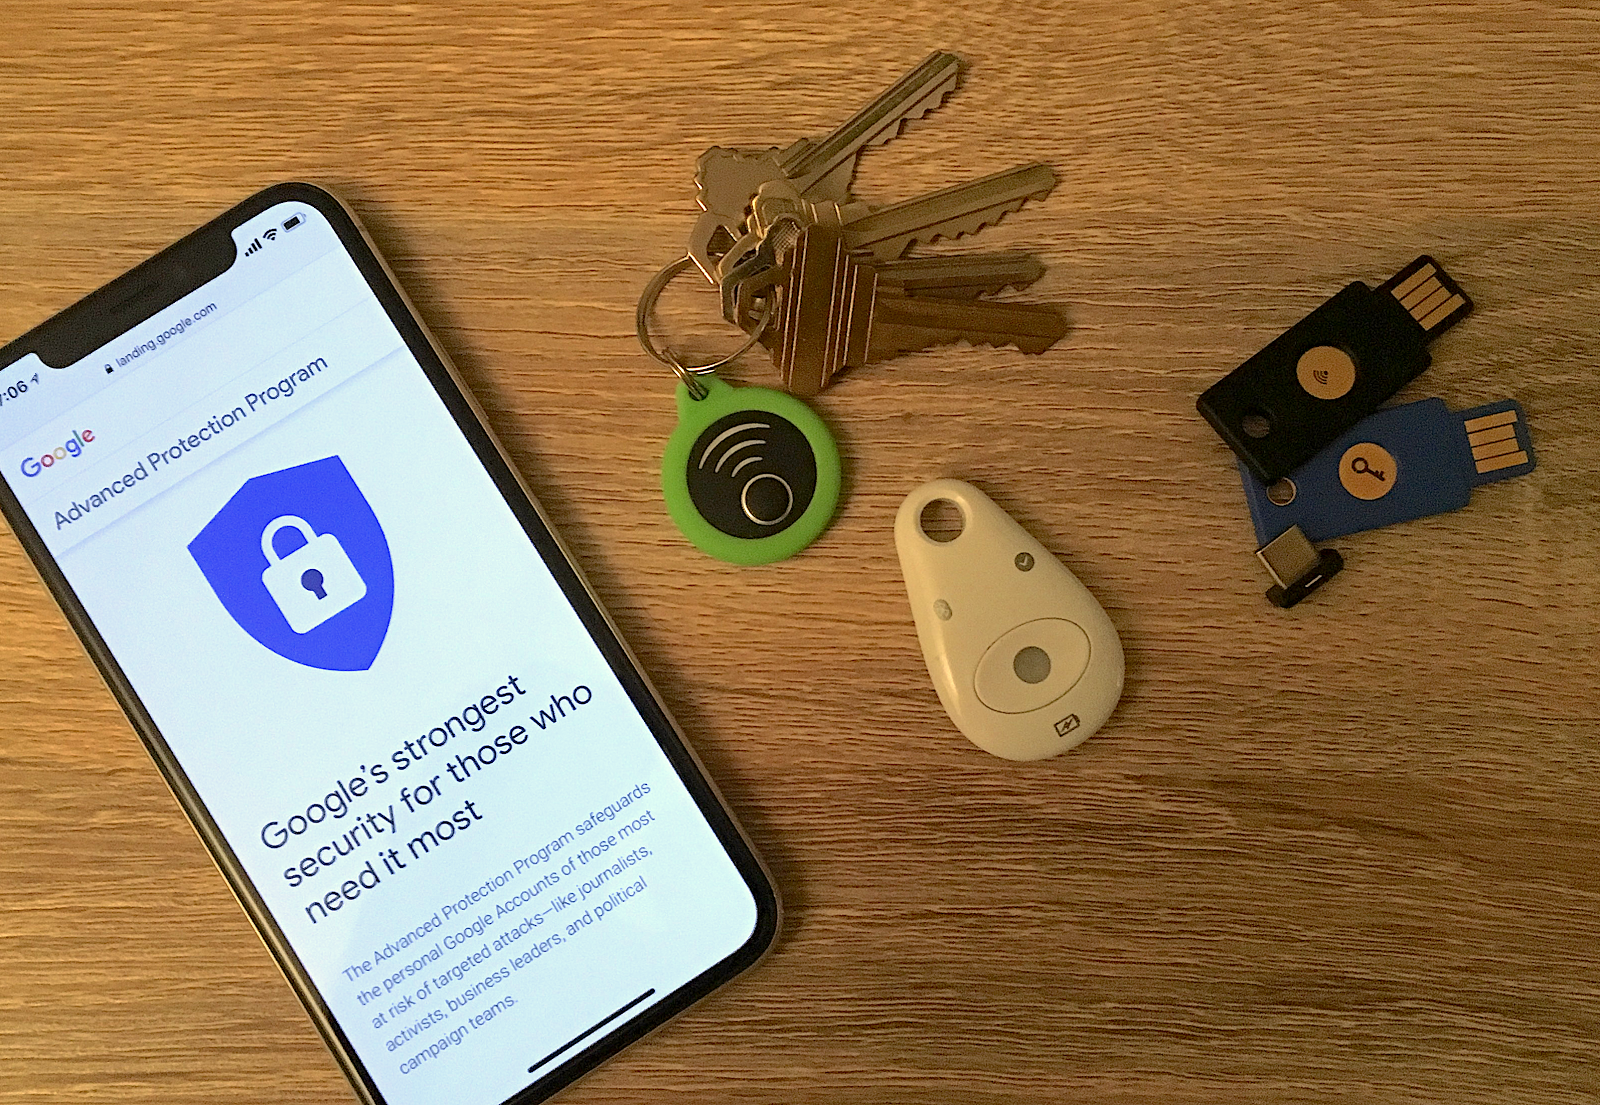 Google's Advanced Protection Program with iPhone and iPad